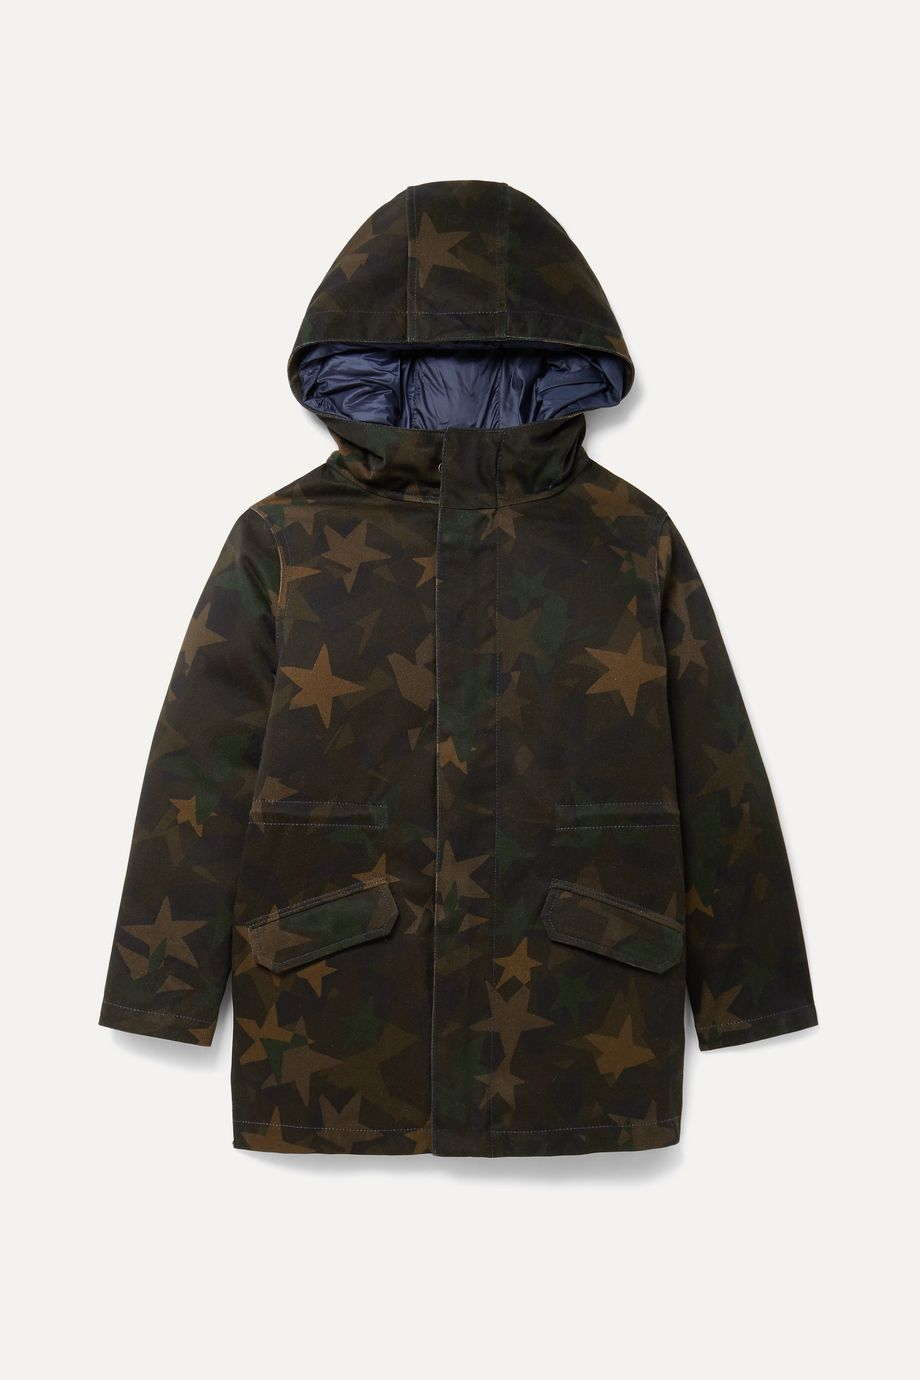 Yves Salomon Kids Ages 8 - 10 layered cotton-blend and quilted shell down parka